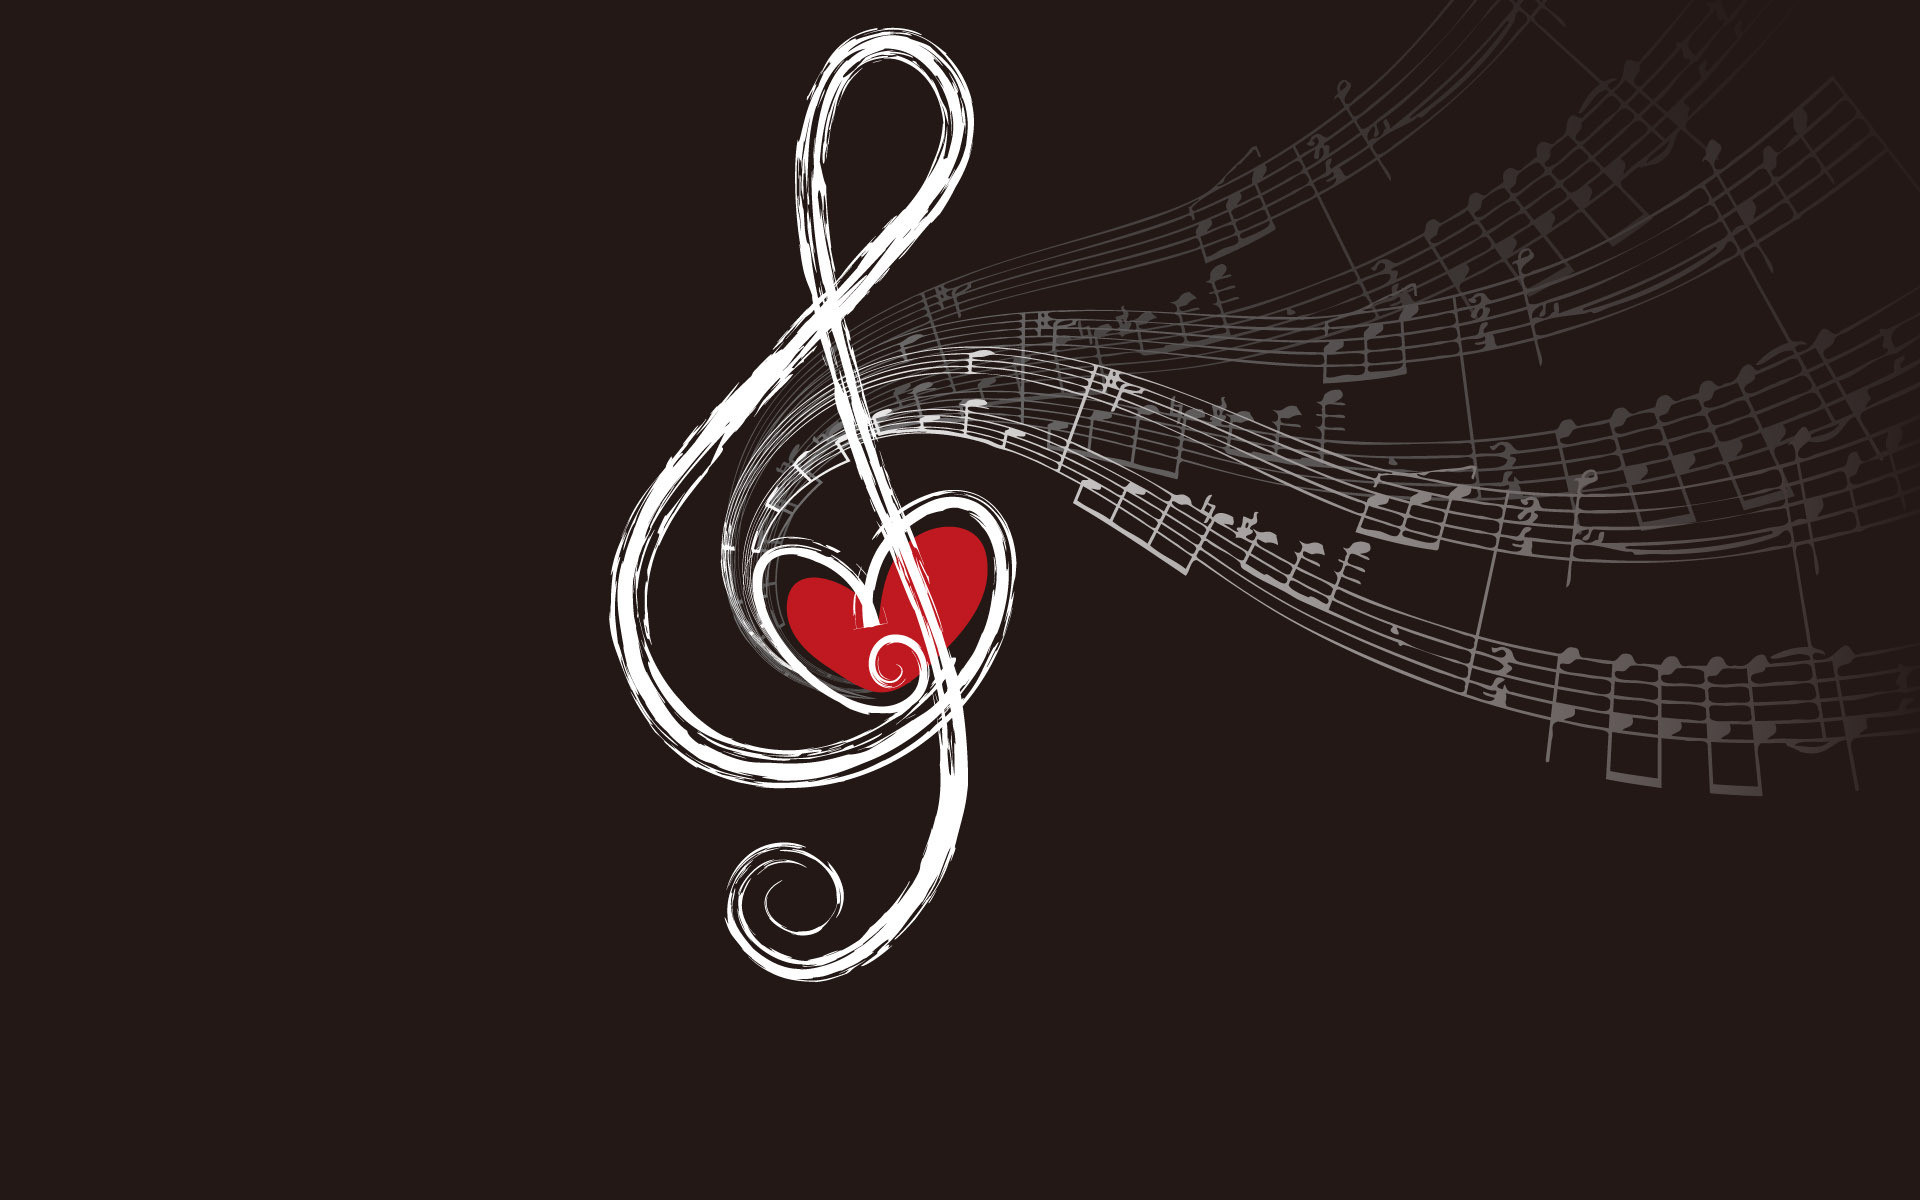 backgrounds-music-sheet-background-violin-powerpoint-wallpapers-hd .